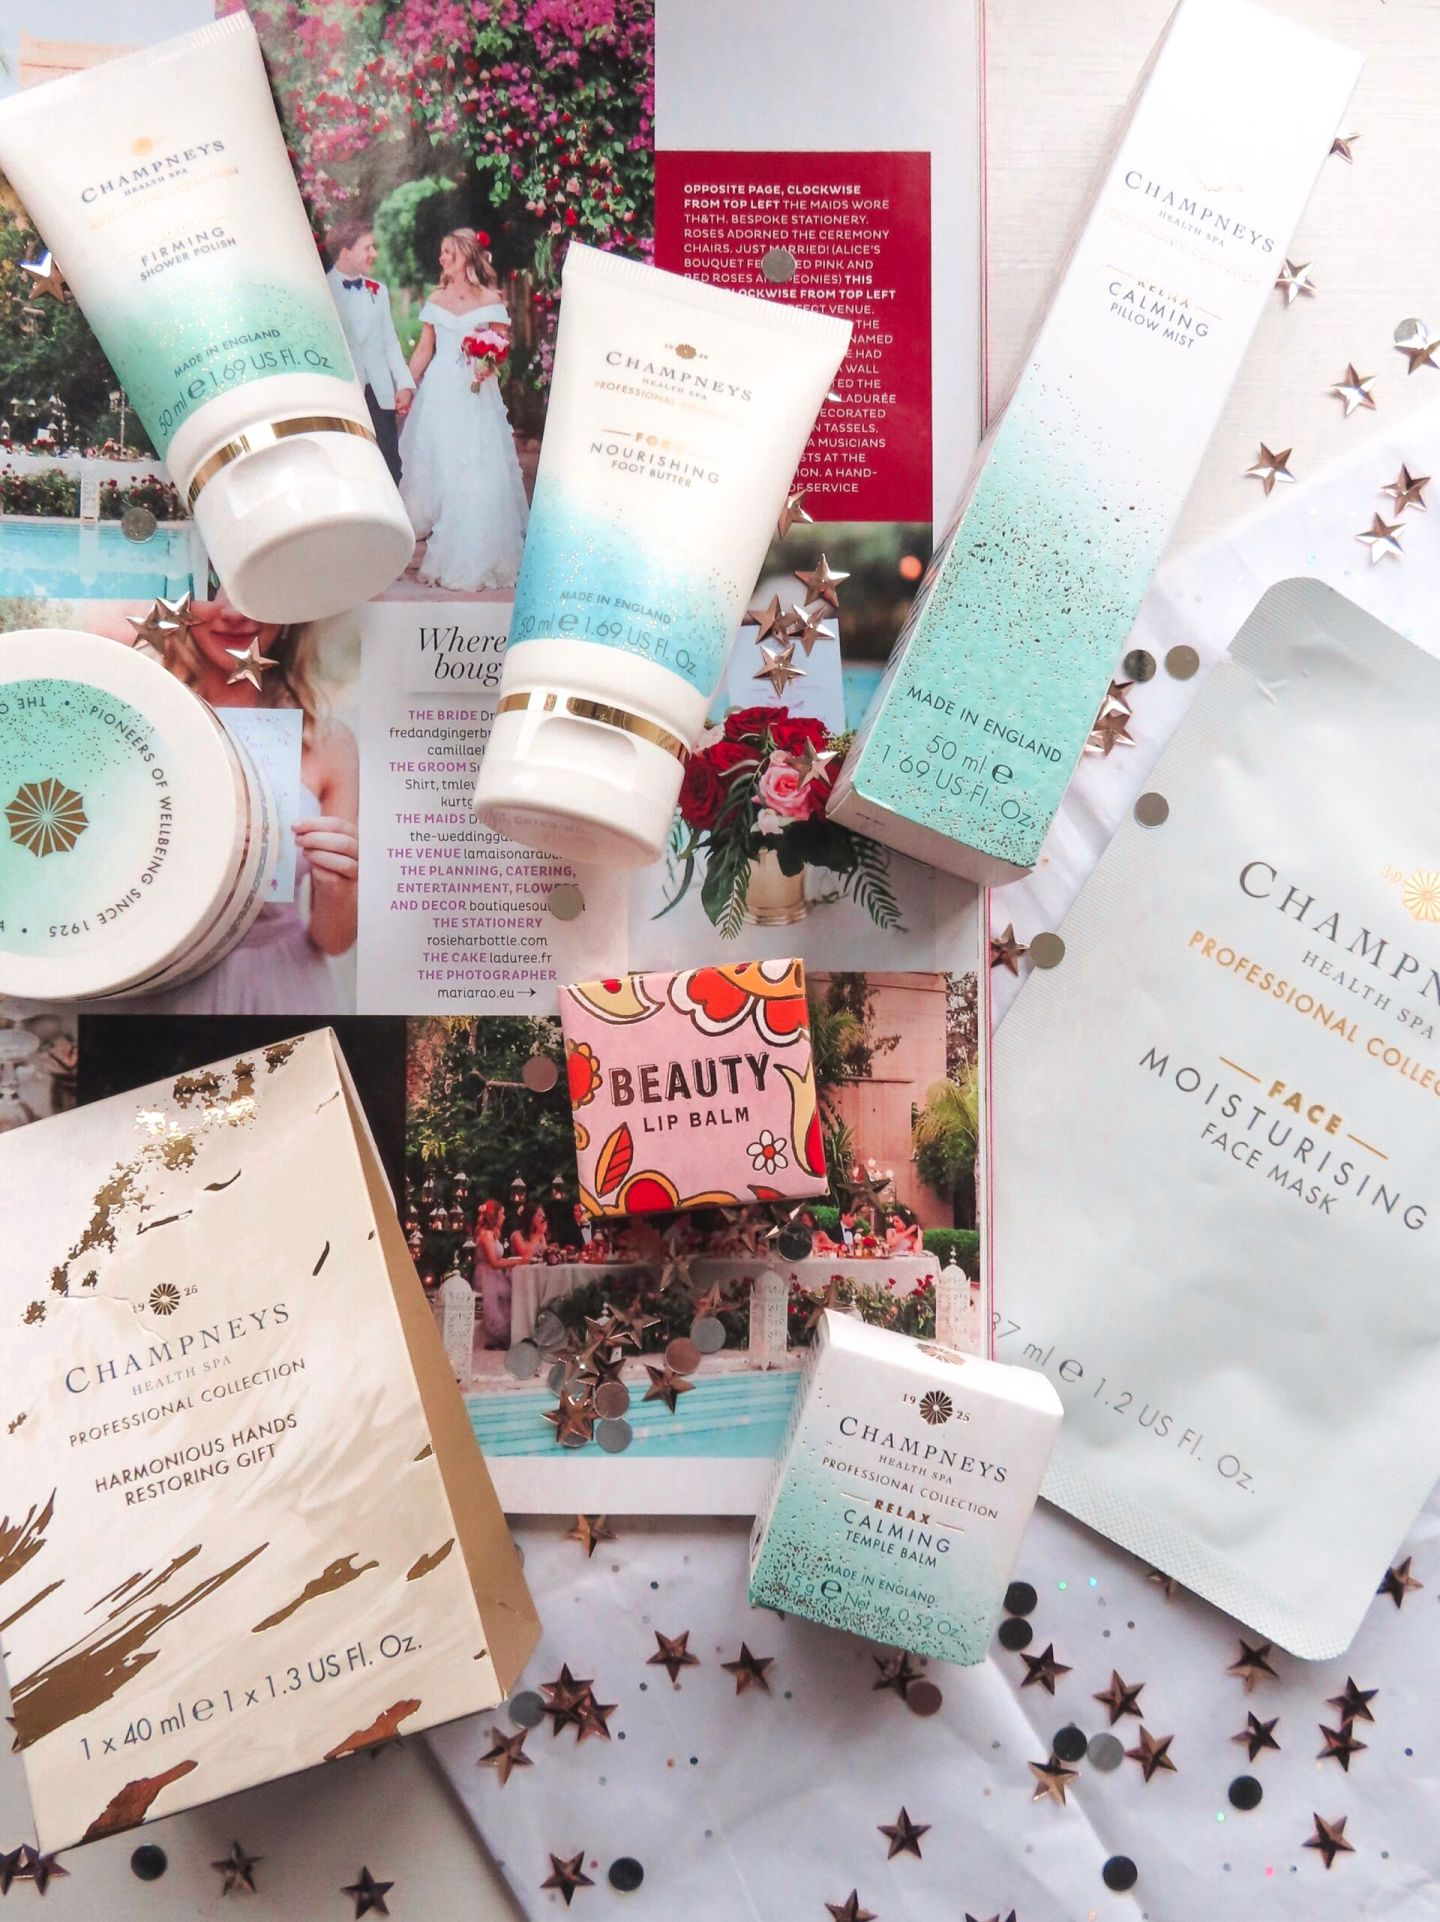 Champneys gifts